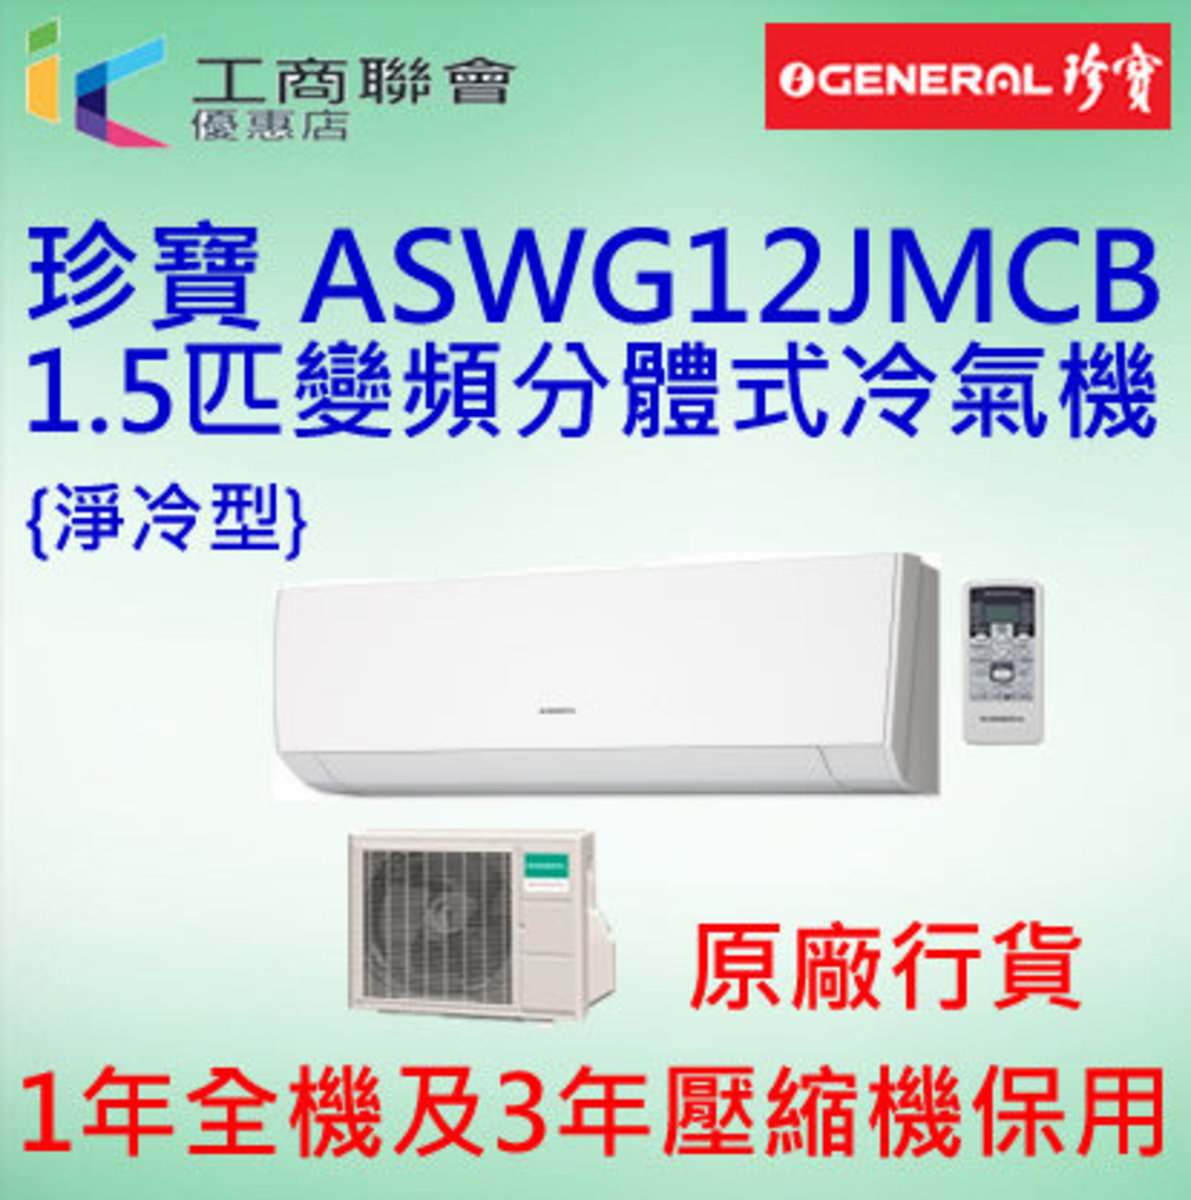 ASWG12JMCB 1.5 HP (Net Cool) Frequency Conversion Wall Mount